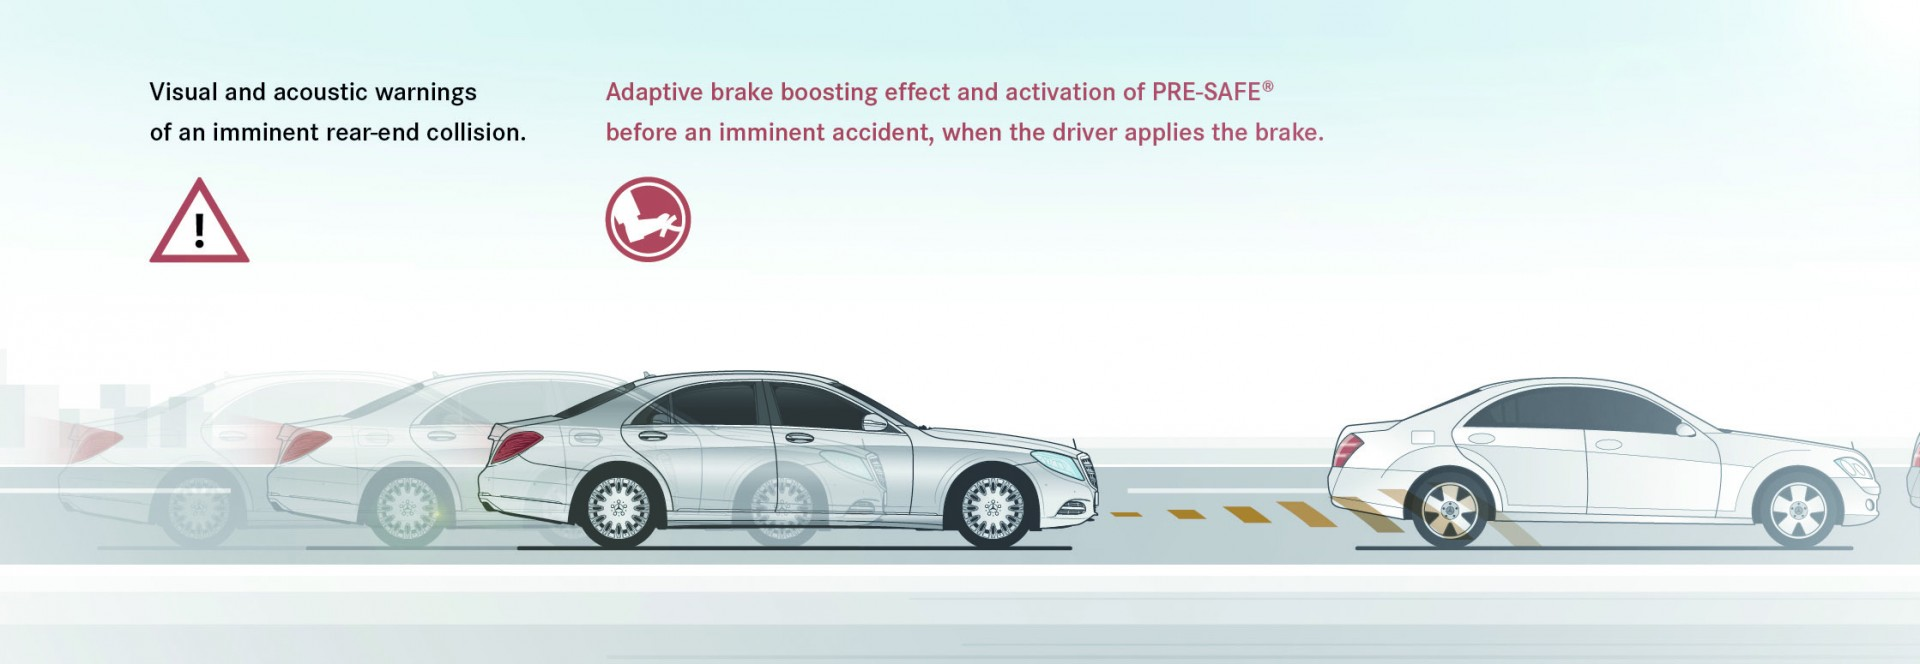 Adaptive brake boosting effect and activation of PRE-SAFE® before an imminent accident, when the driver applies the brake.